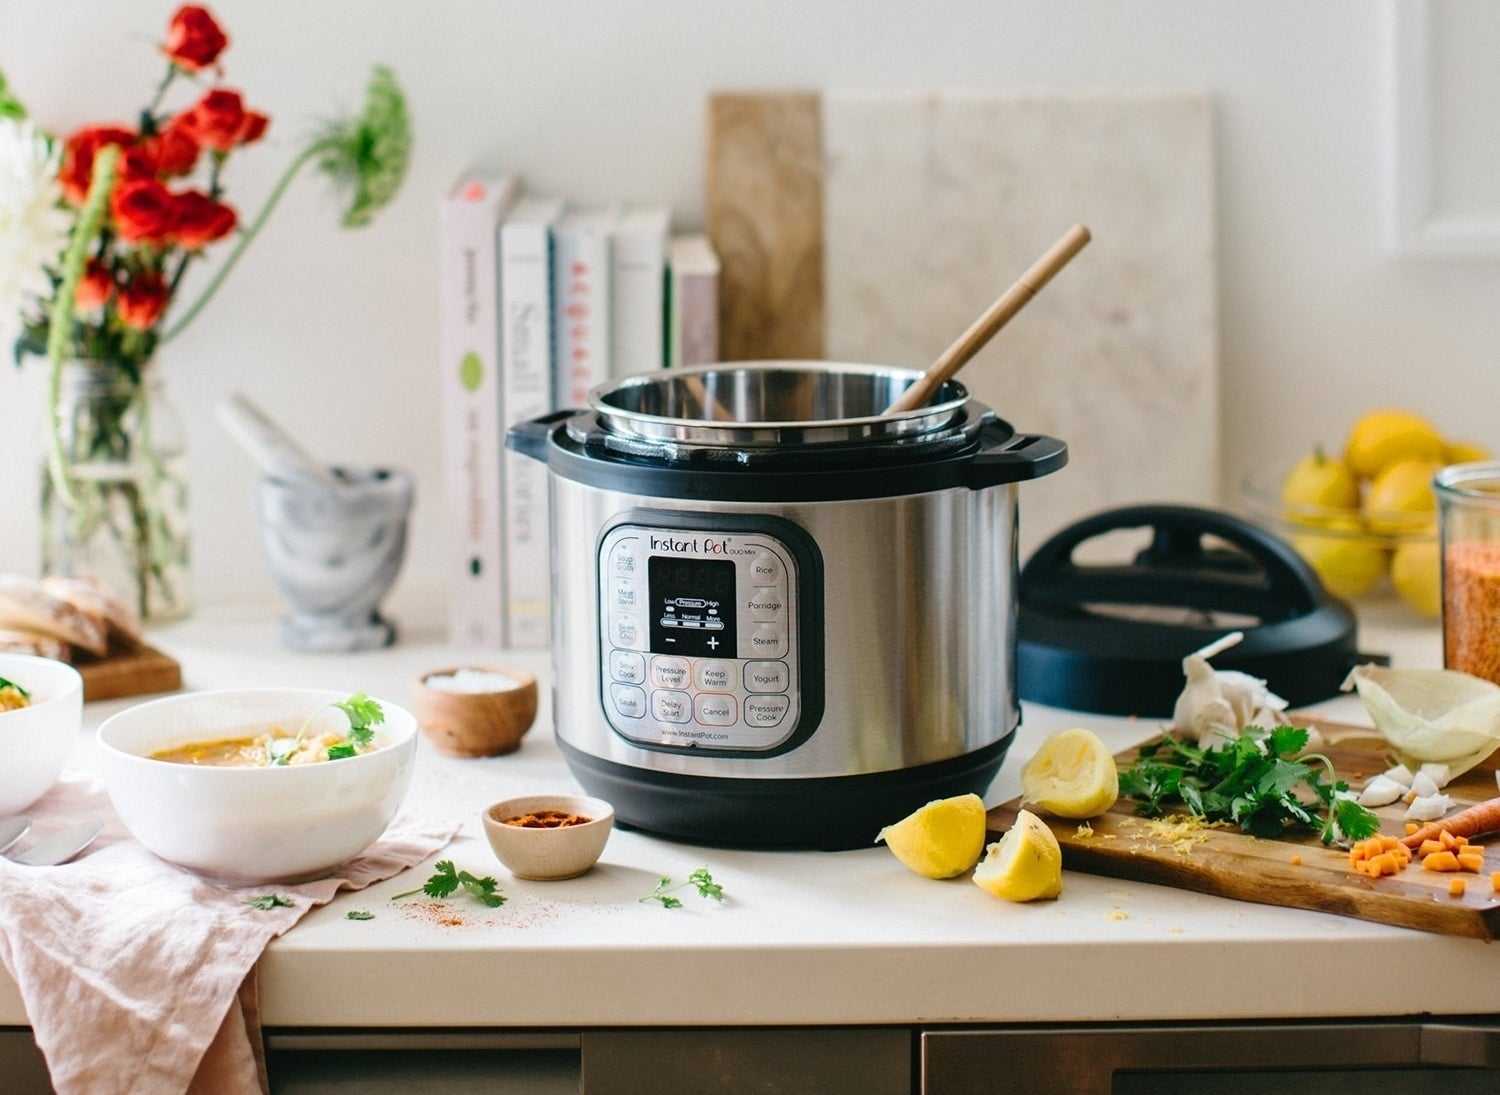 An instant pot on a counter with a wooden spoon and scattered ingredients